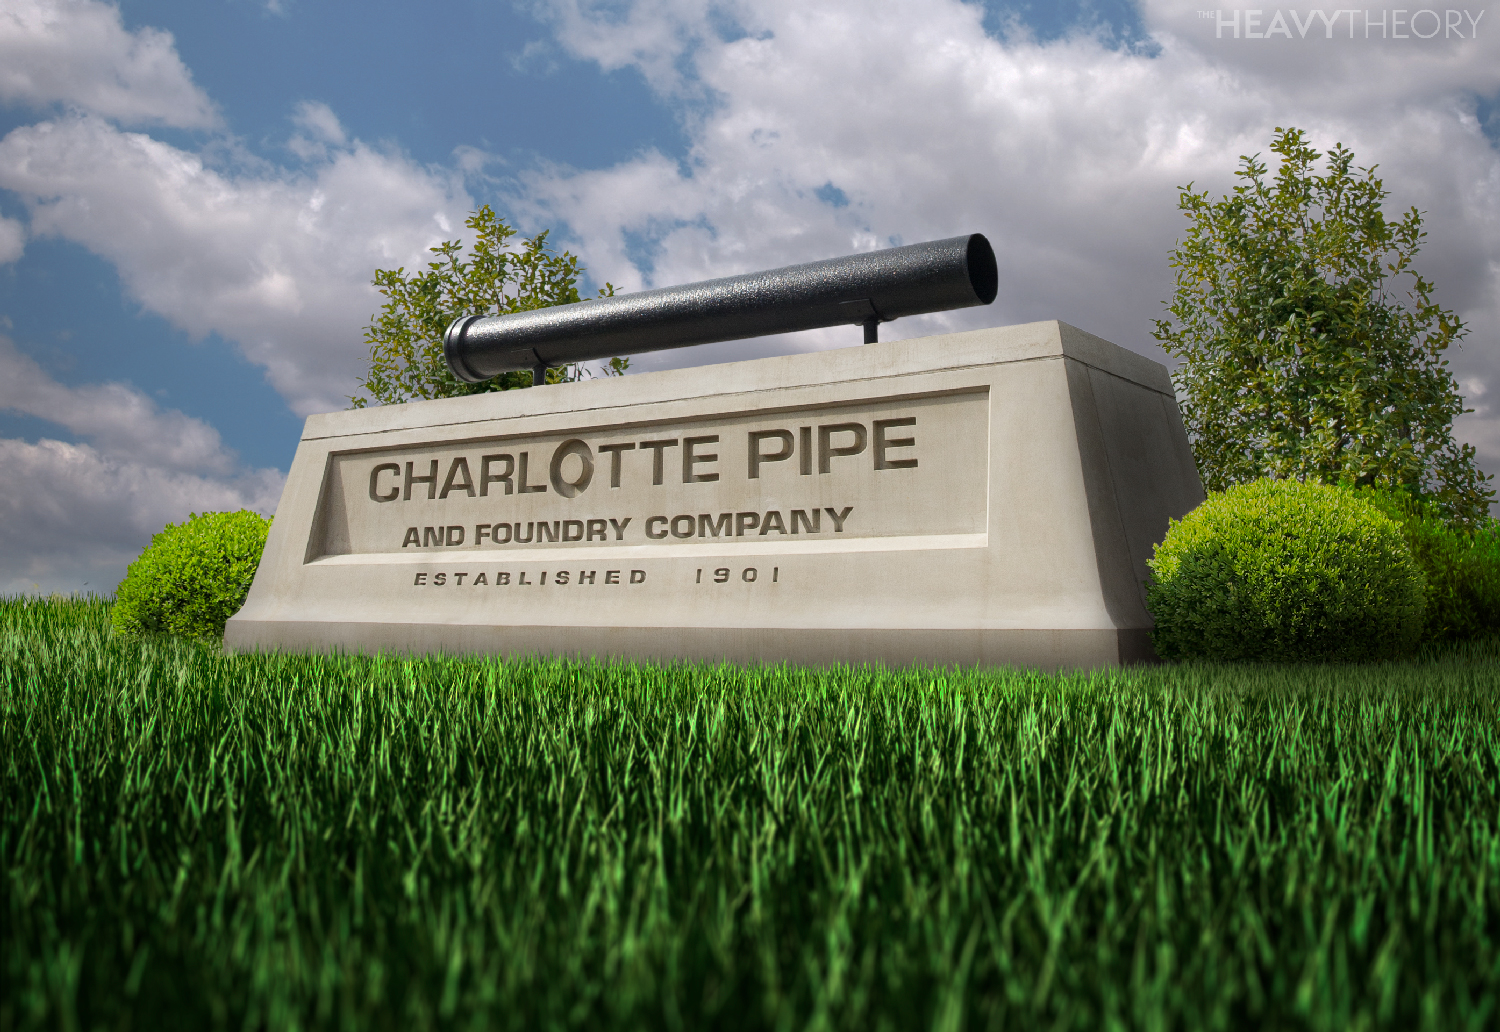 Charlotte-PIpe_Mike-Carroll-Photography_The-Heavy-Theory_After.jpg